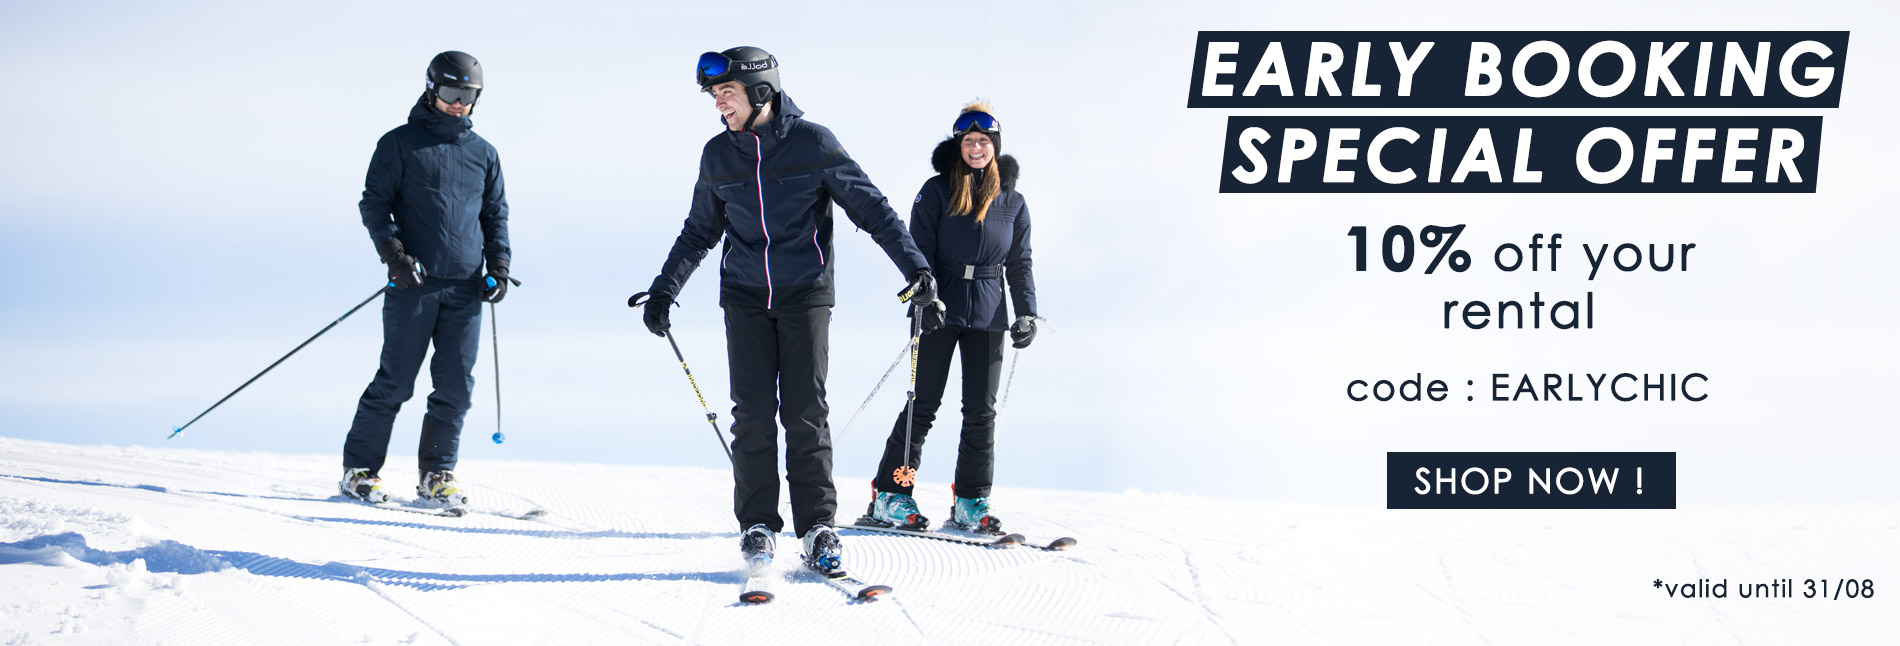 Early booking offer ski